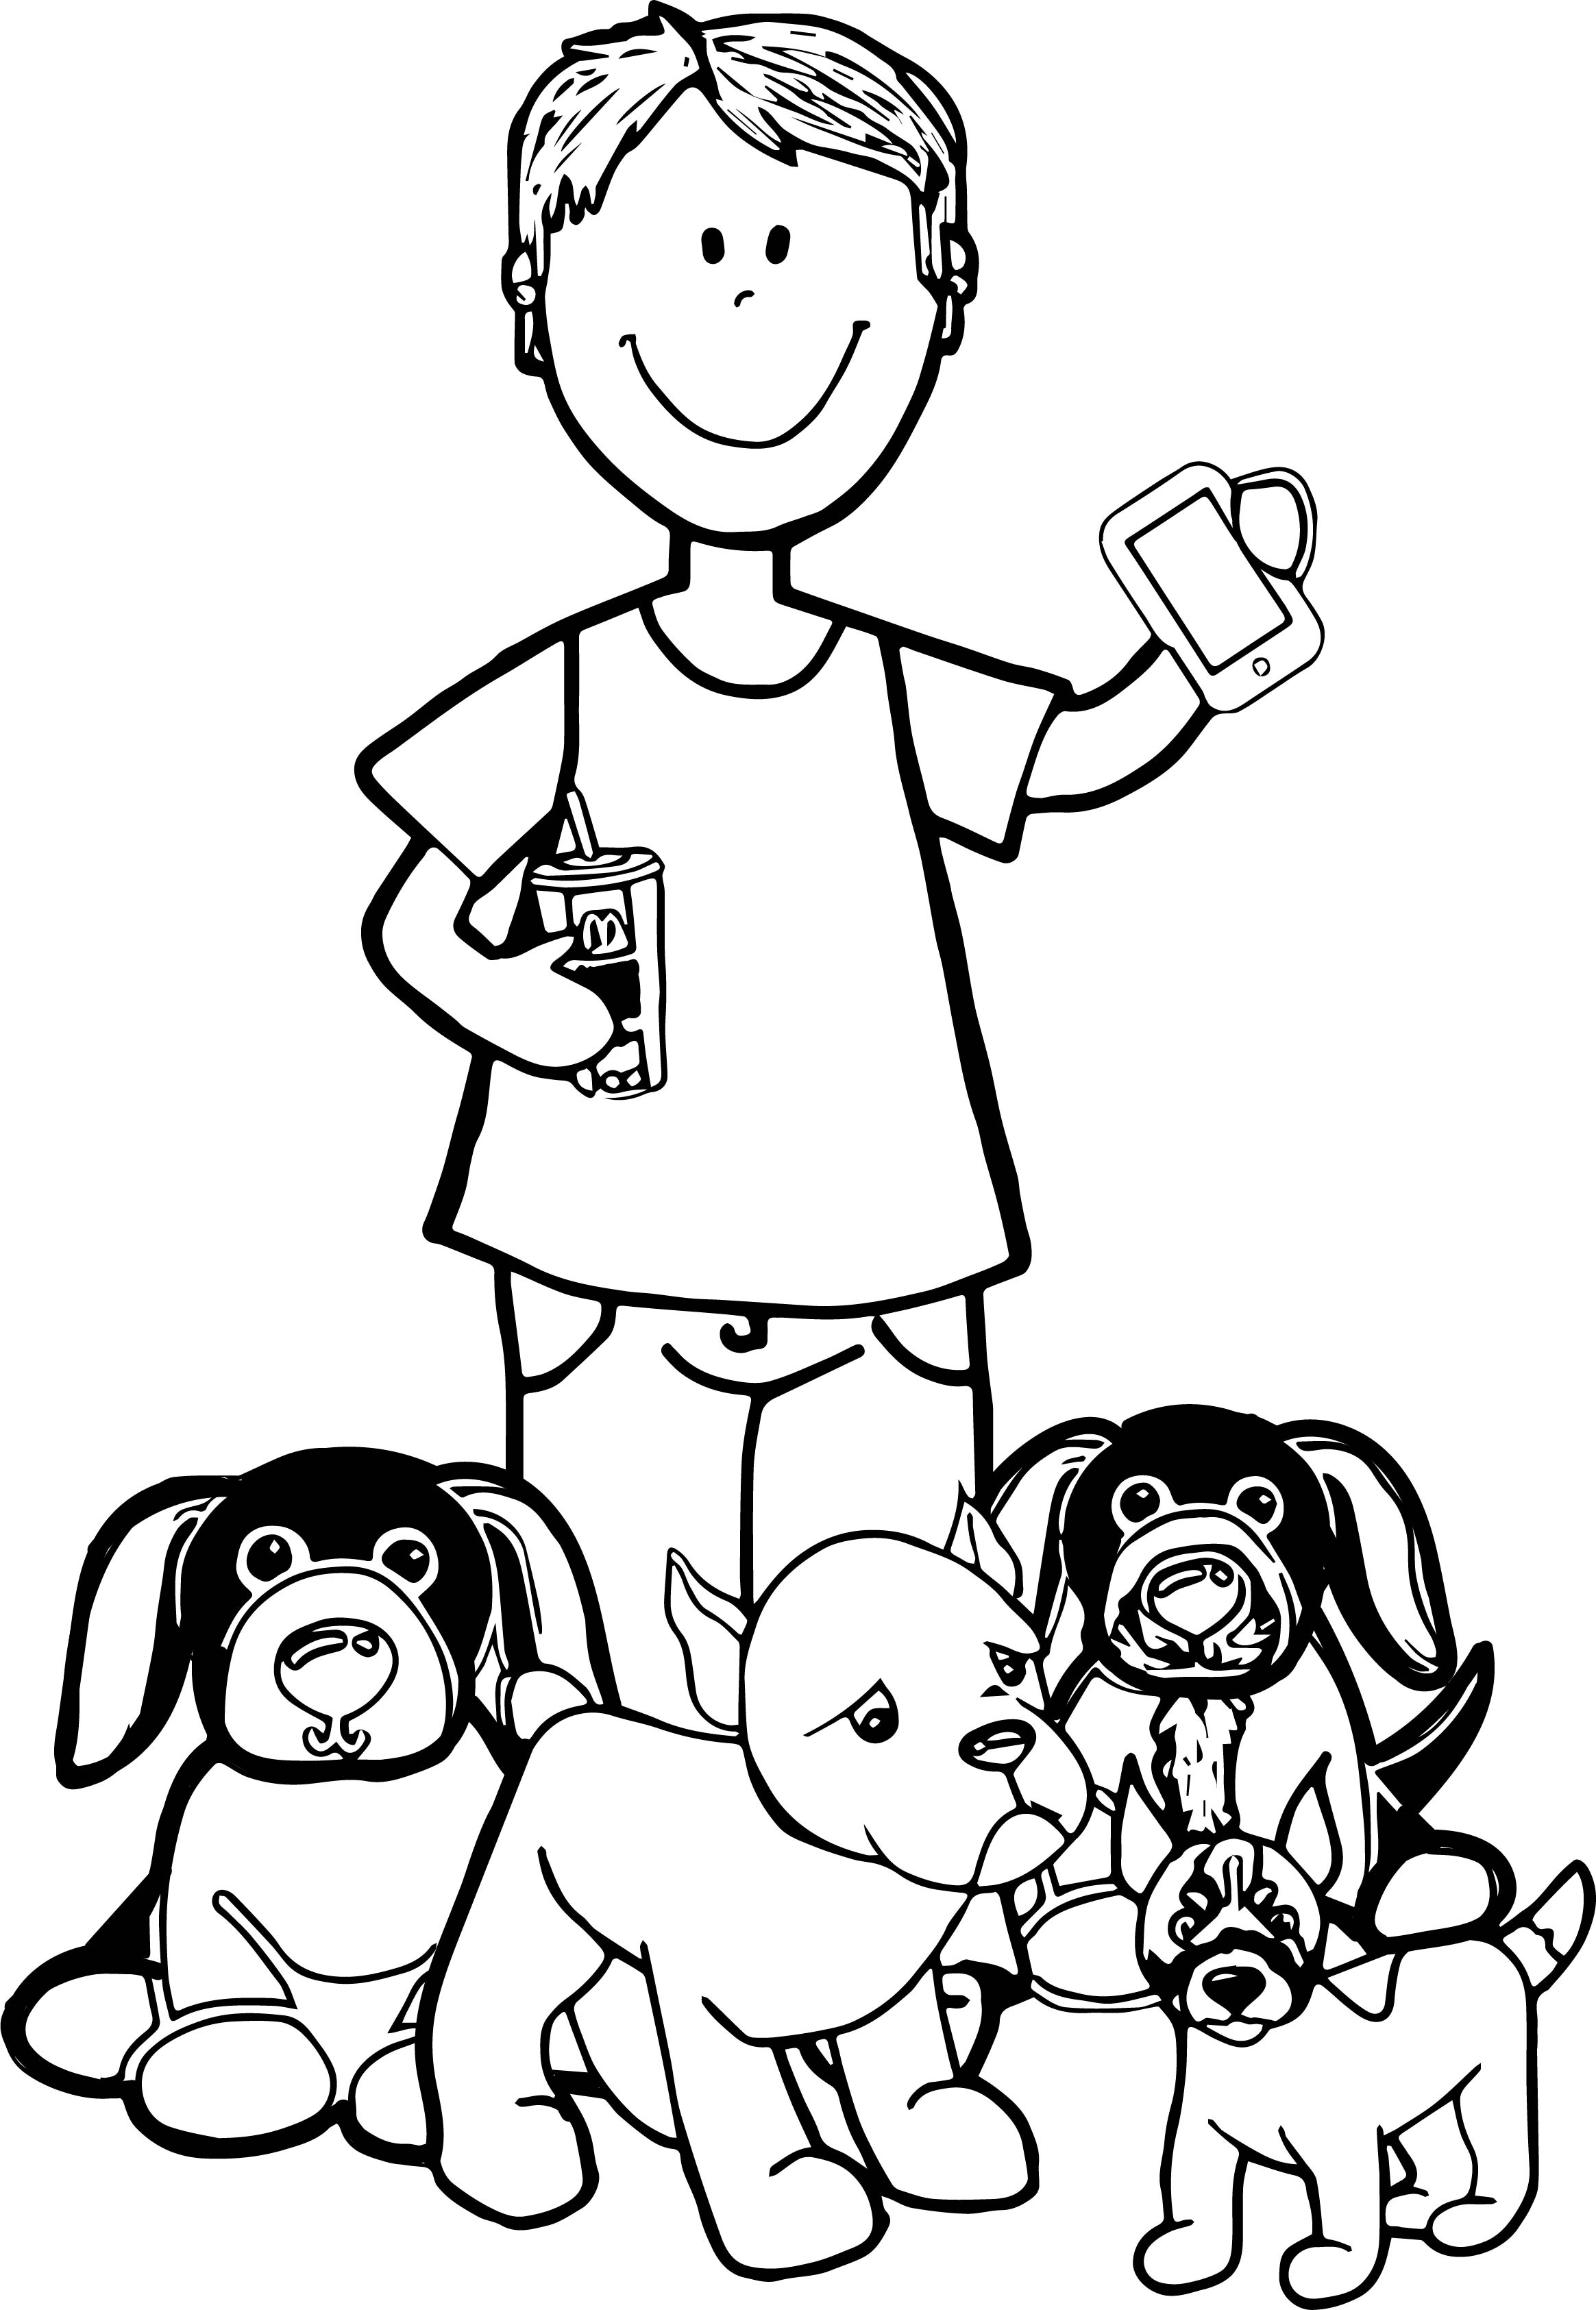 Jls boy band free colouring pages for Band coloring pages